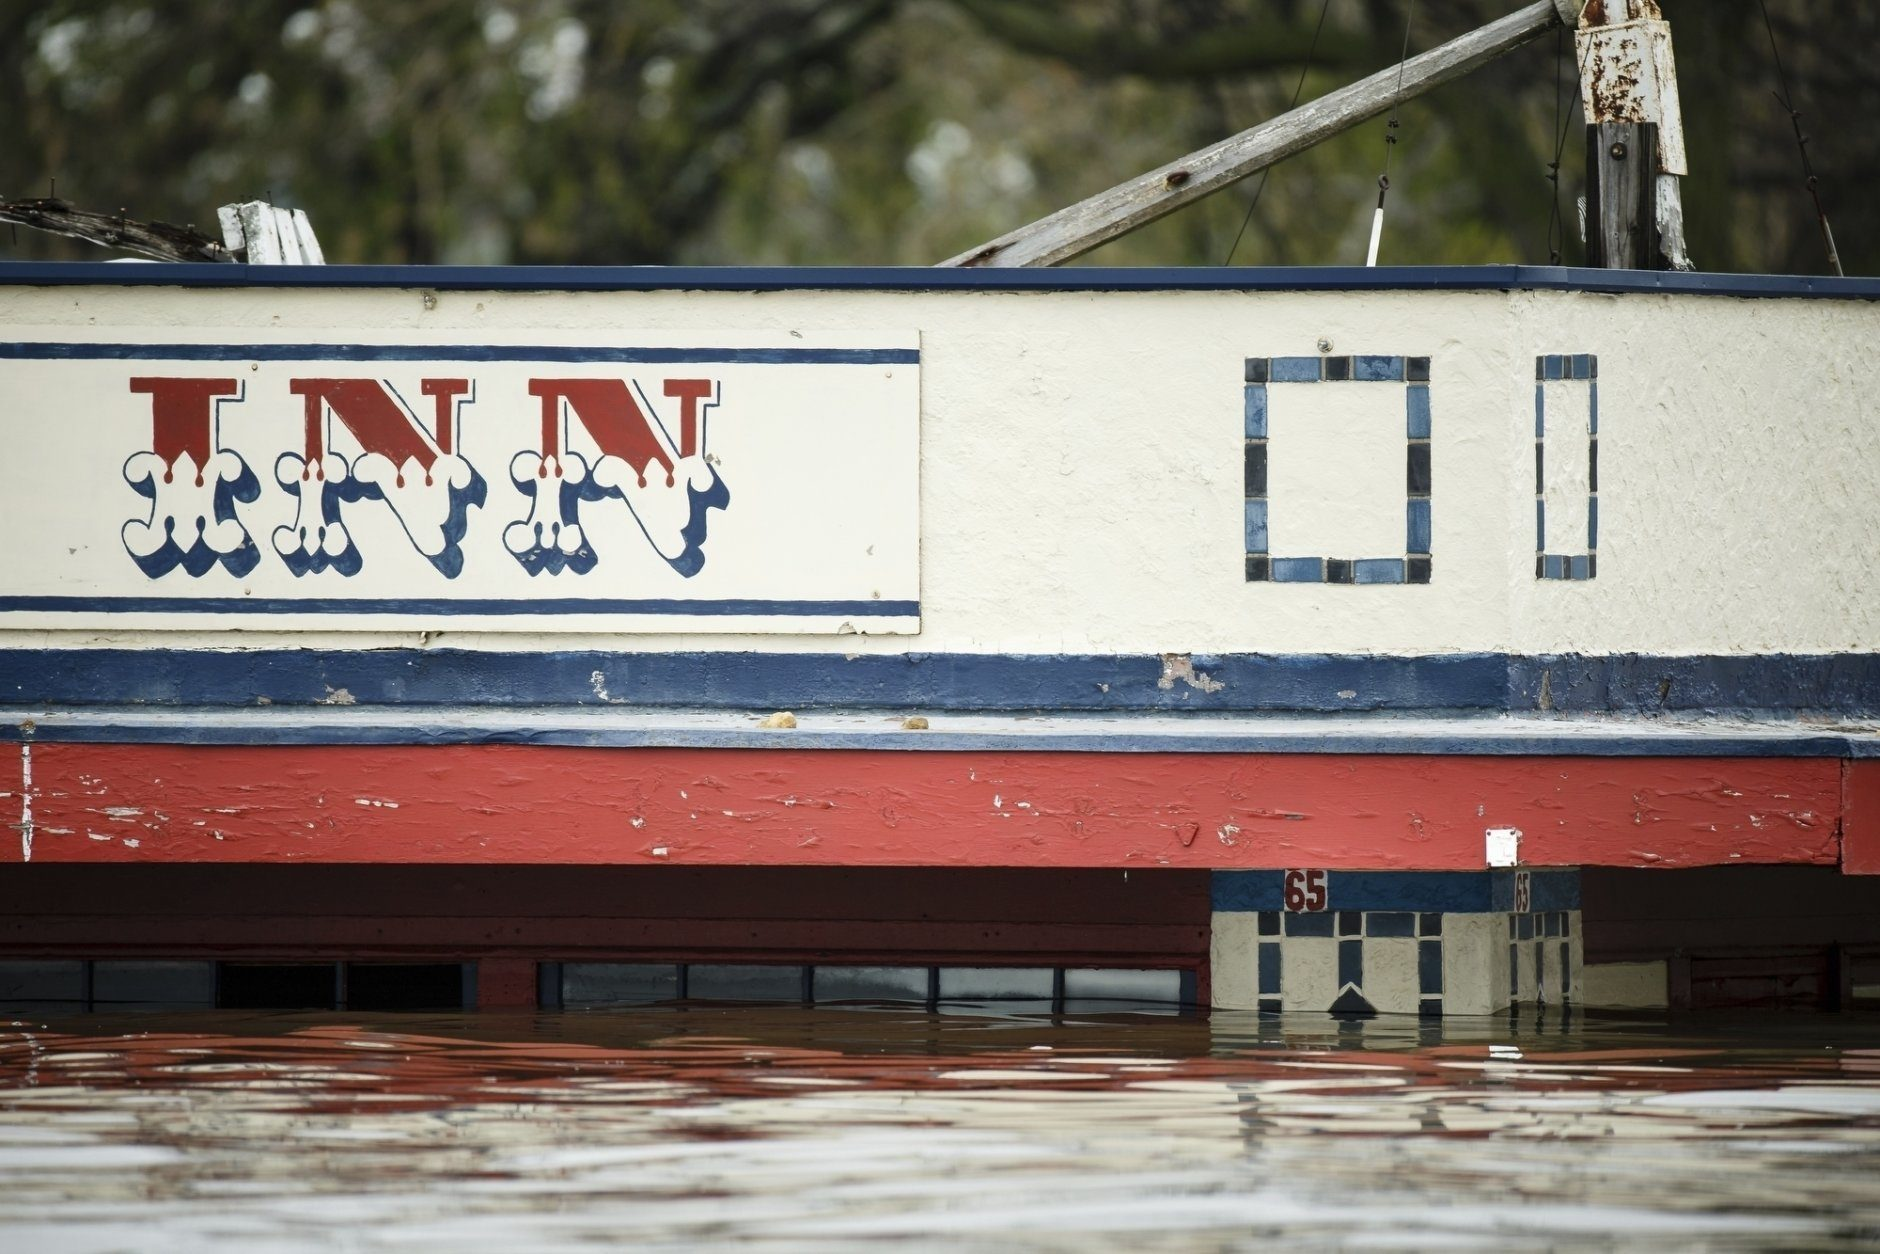 Flood water get close to the high water mark from the 1965 flood under the awning of The Levee Inn in Downtown Davenport on Wednesday, May 1, 2019, in Davenport, Iowa. A flood wall broke on Tuesday sending water to near record levels with little to no warning.  (Brian Powers/The Des Moines Register via AP)